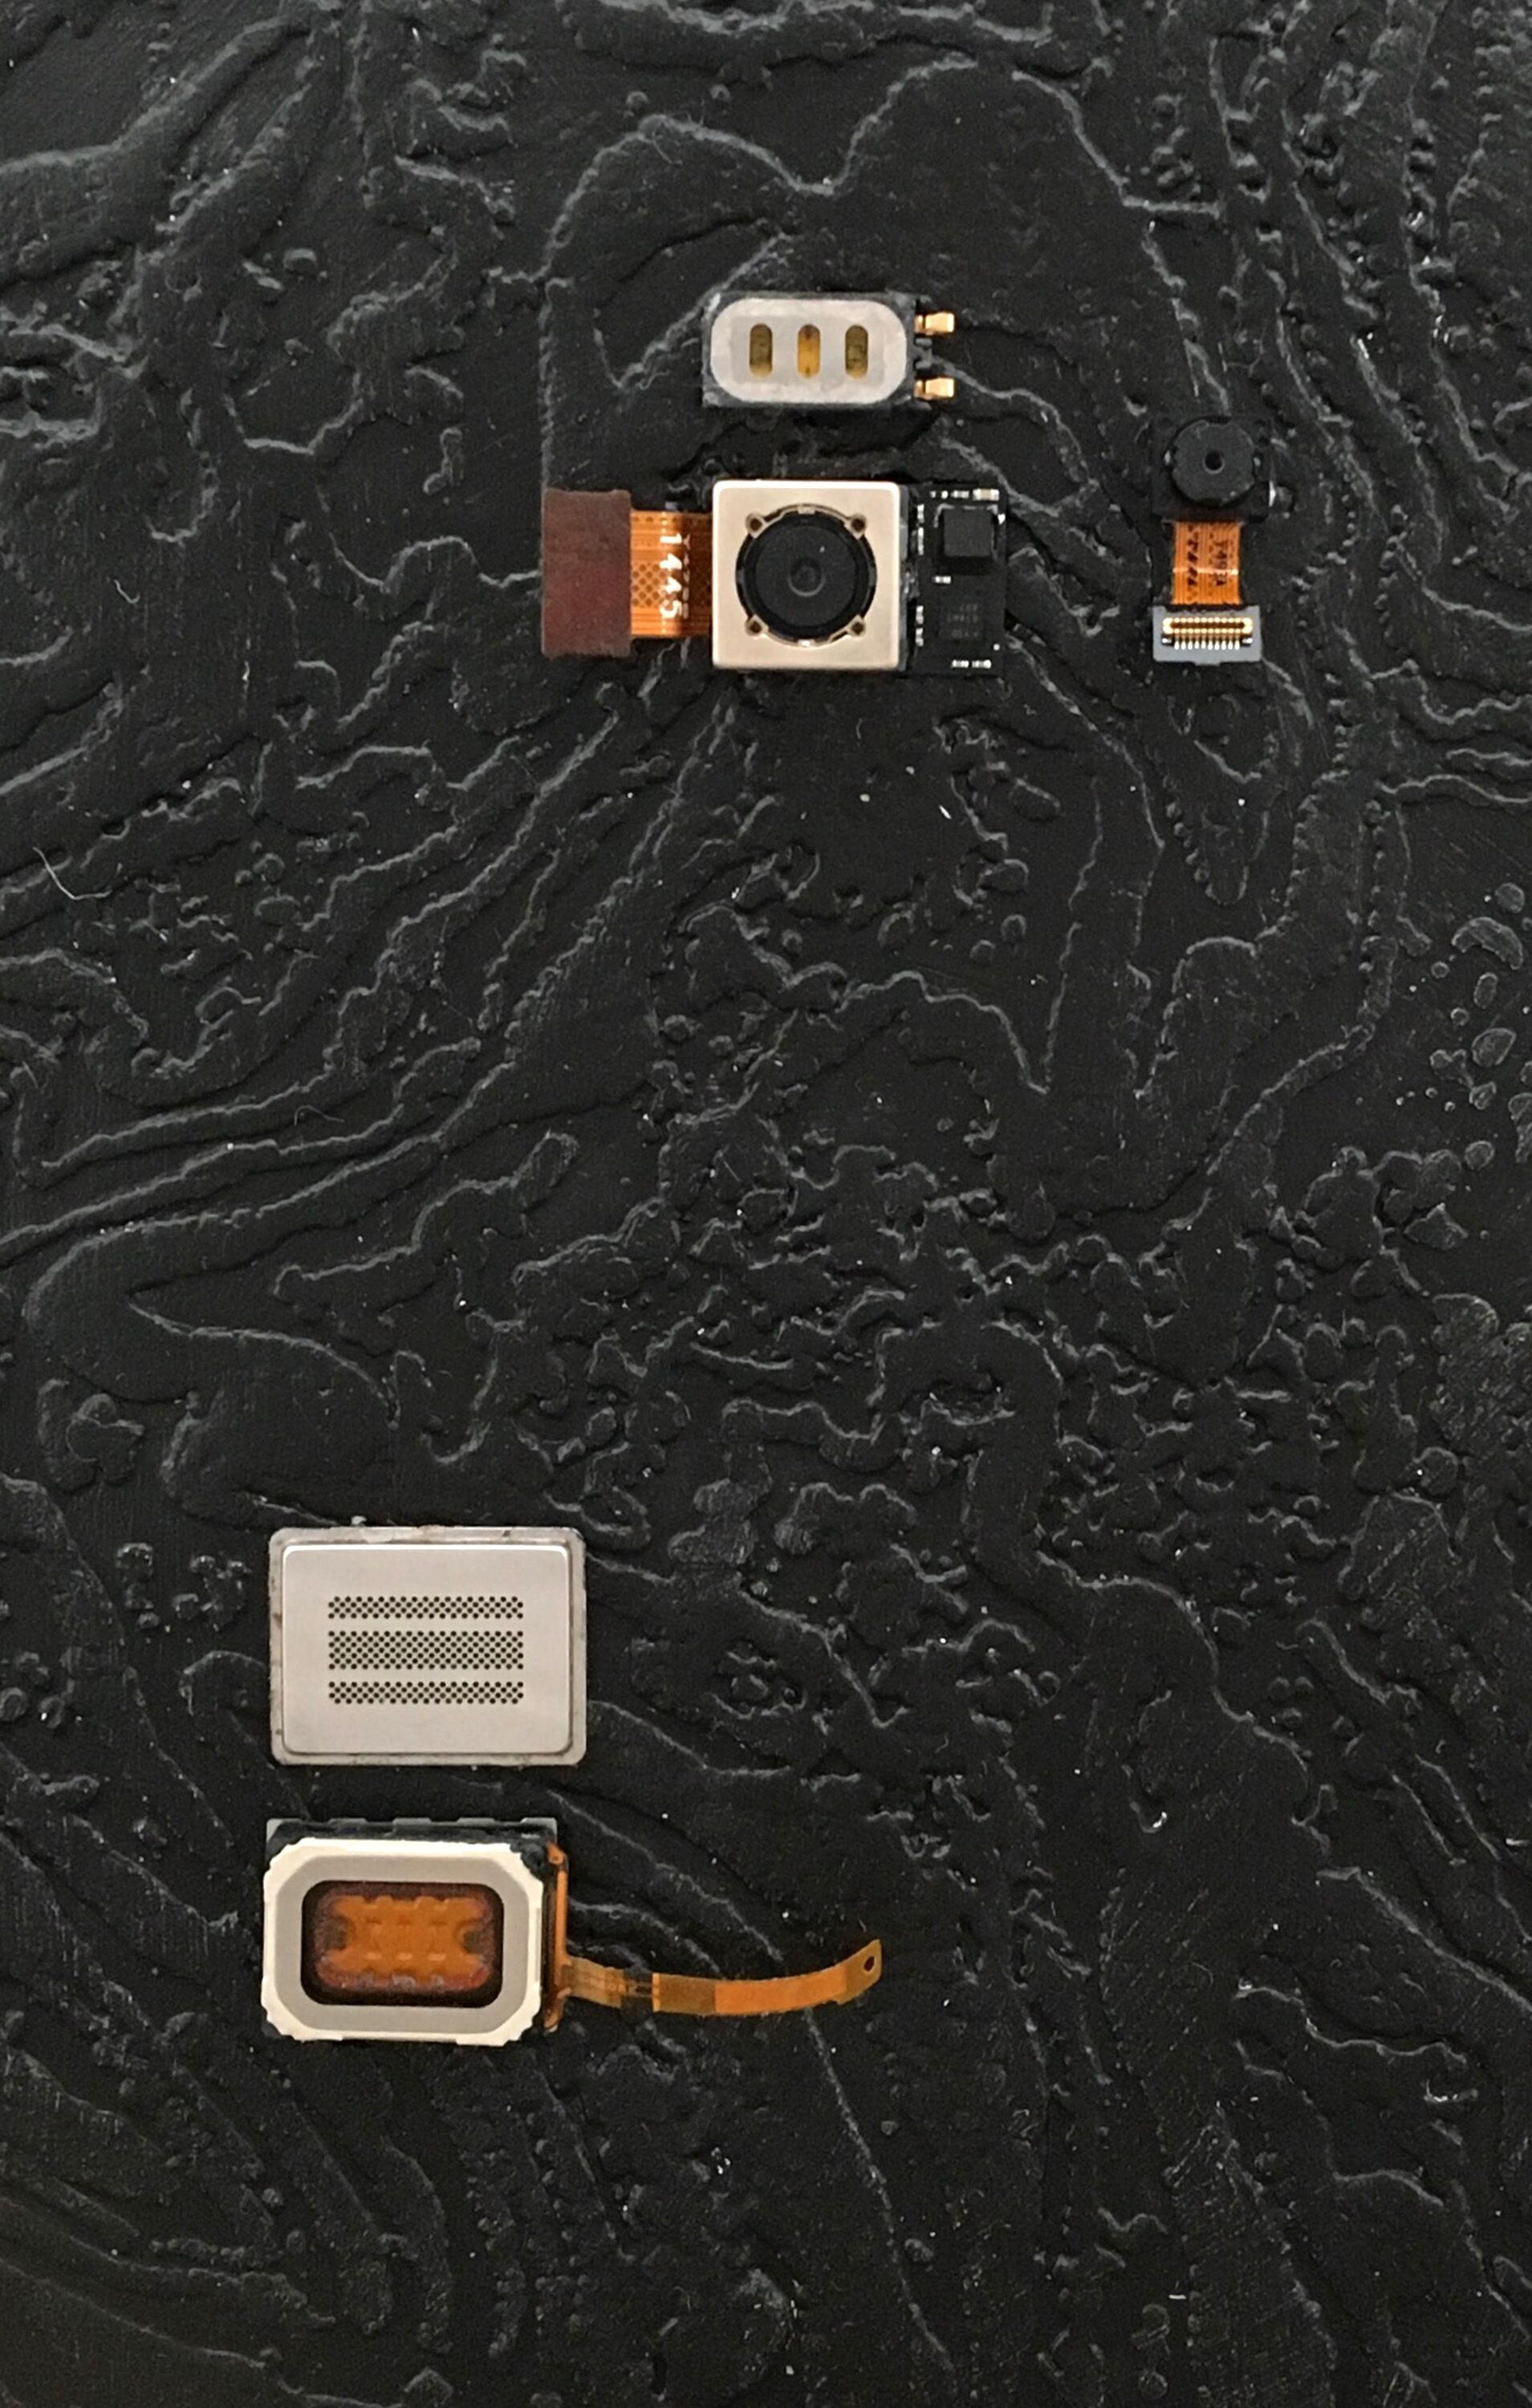 """Corey Conell,  Back to Black (After Snowden) , 2016, Cell phone cameras mounted on enamel painted wallpaper, 7x5""""."""